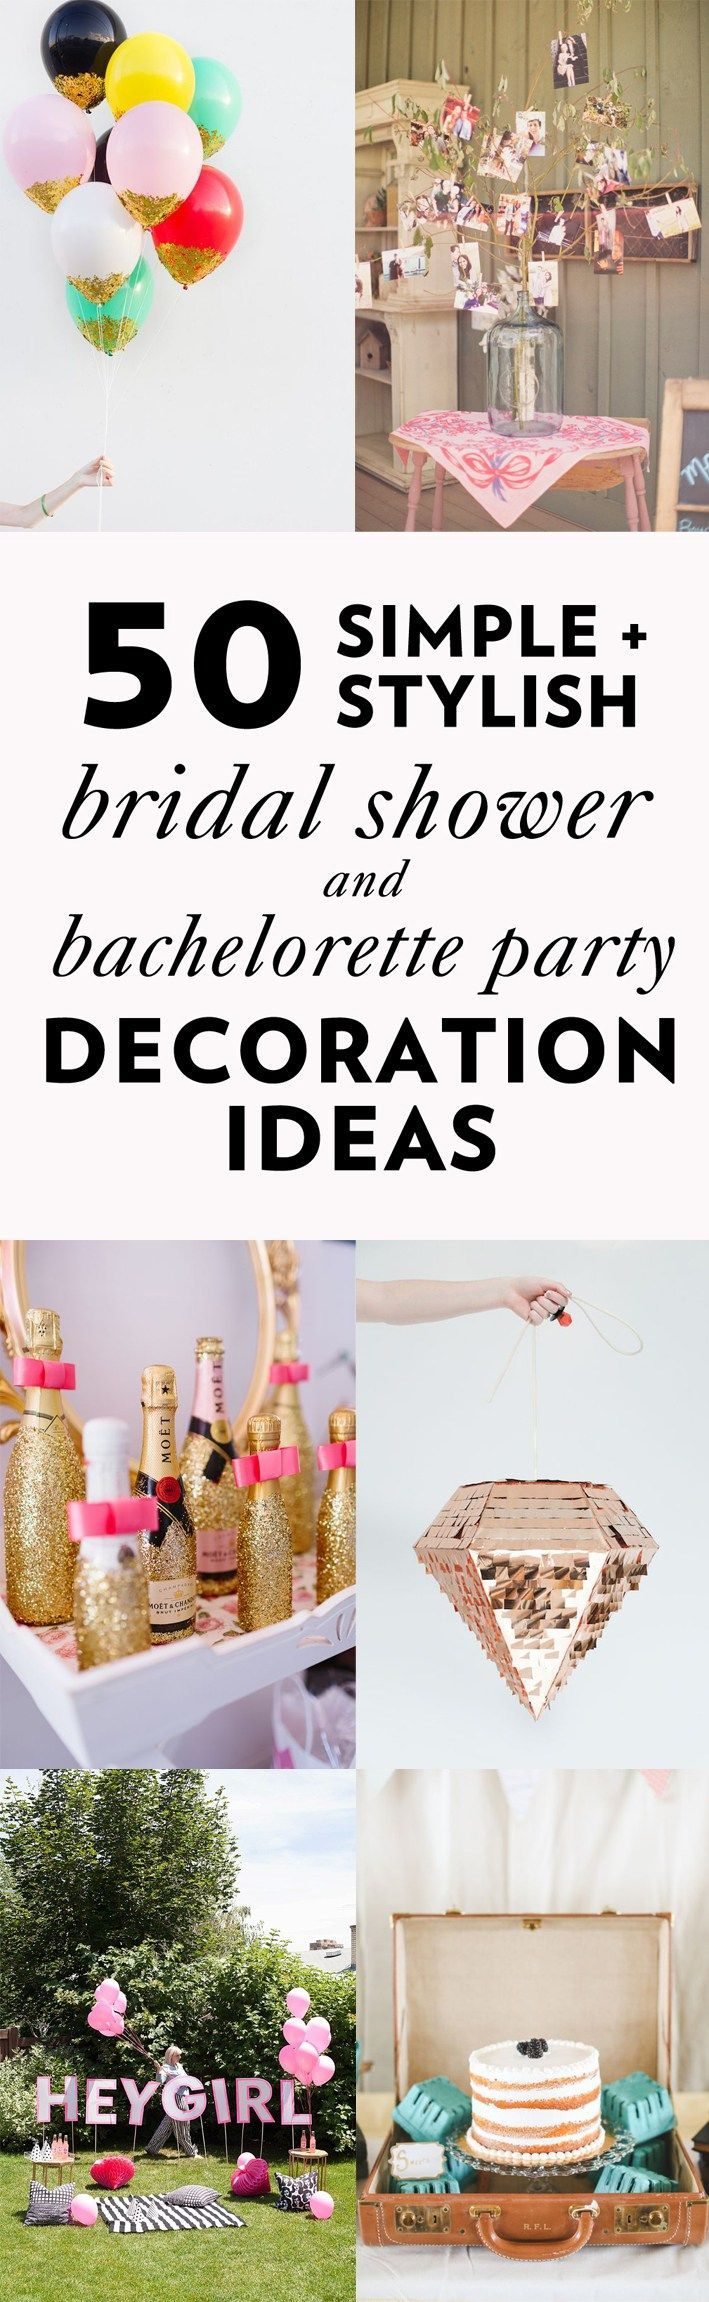 50 Simple and Stylish DIY Bridal Shower